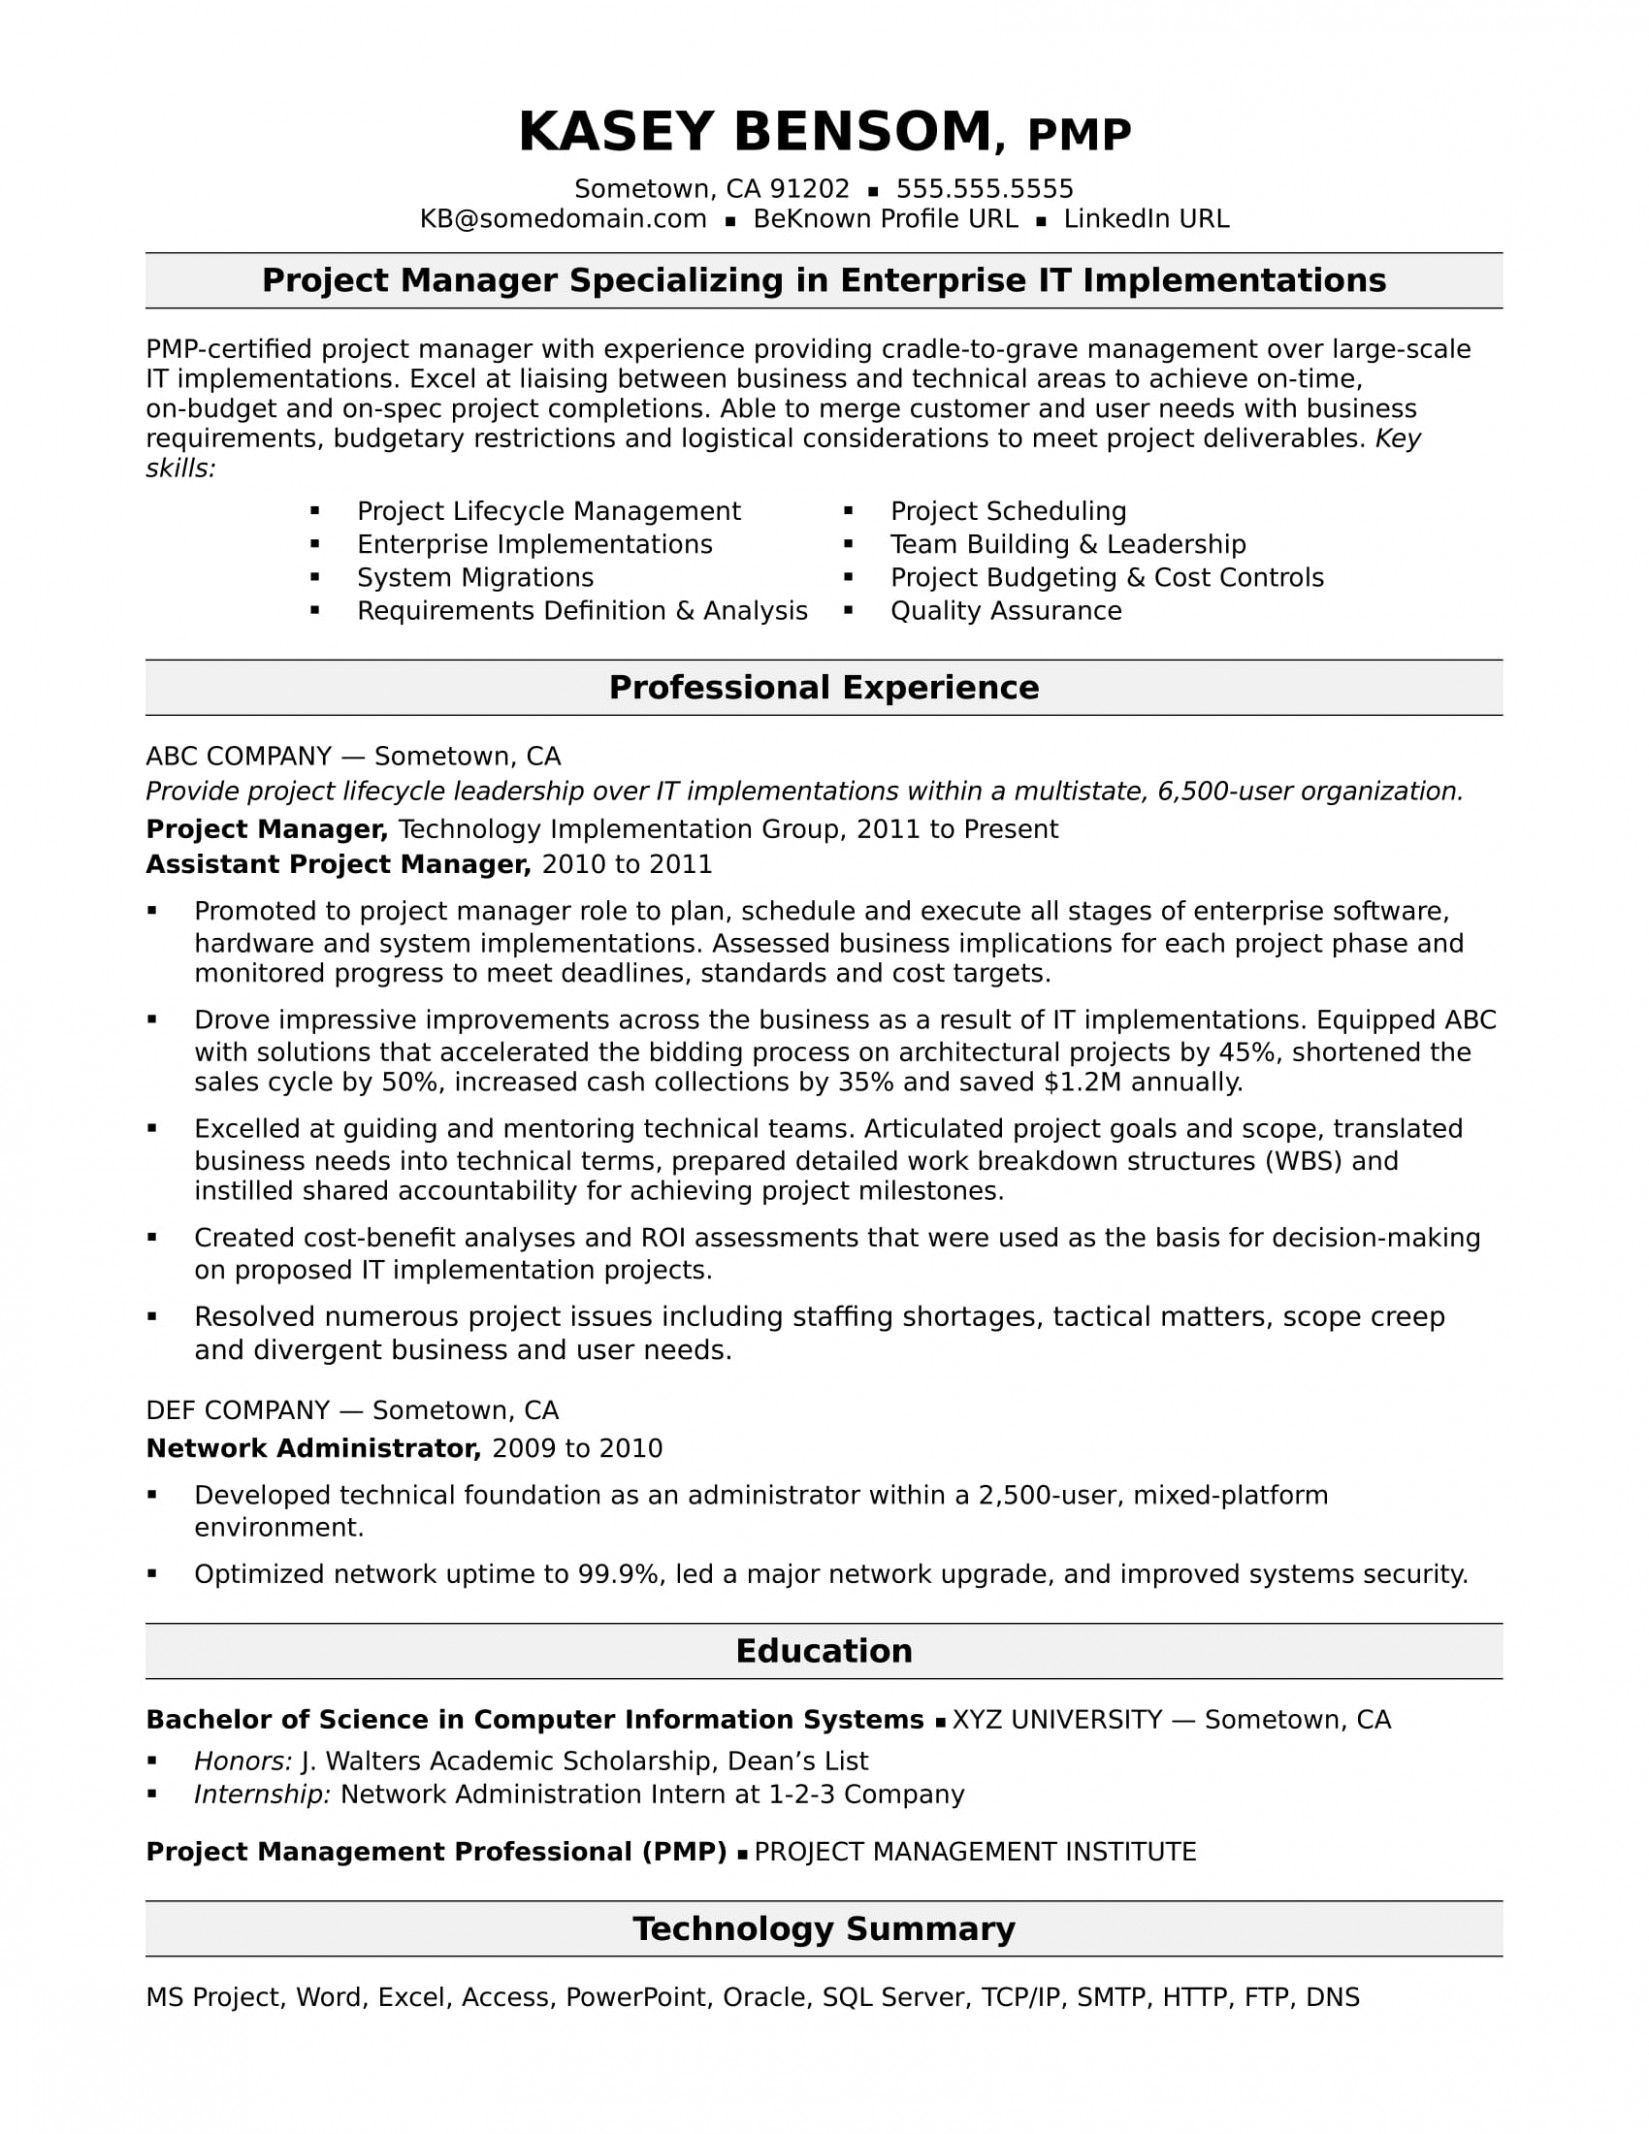 how to type resume with accent in word